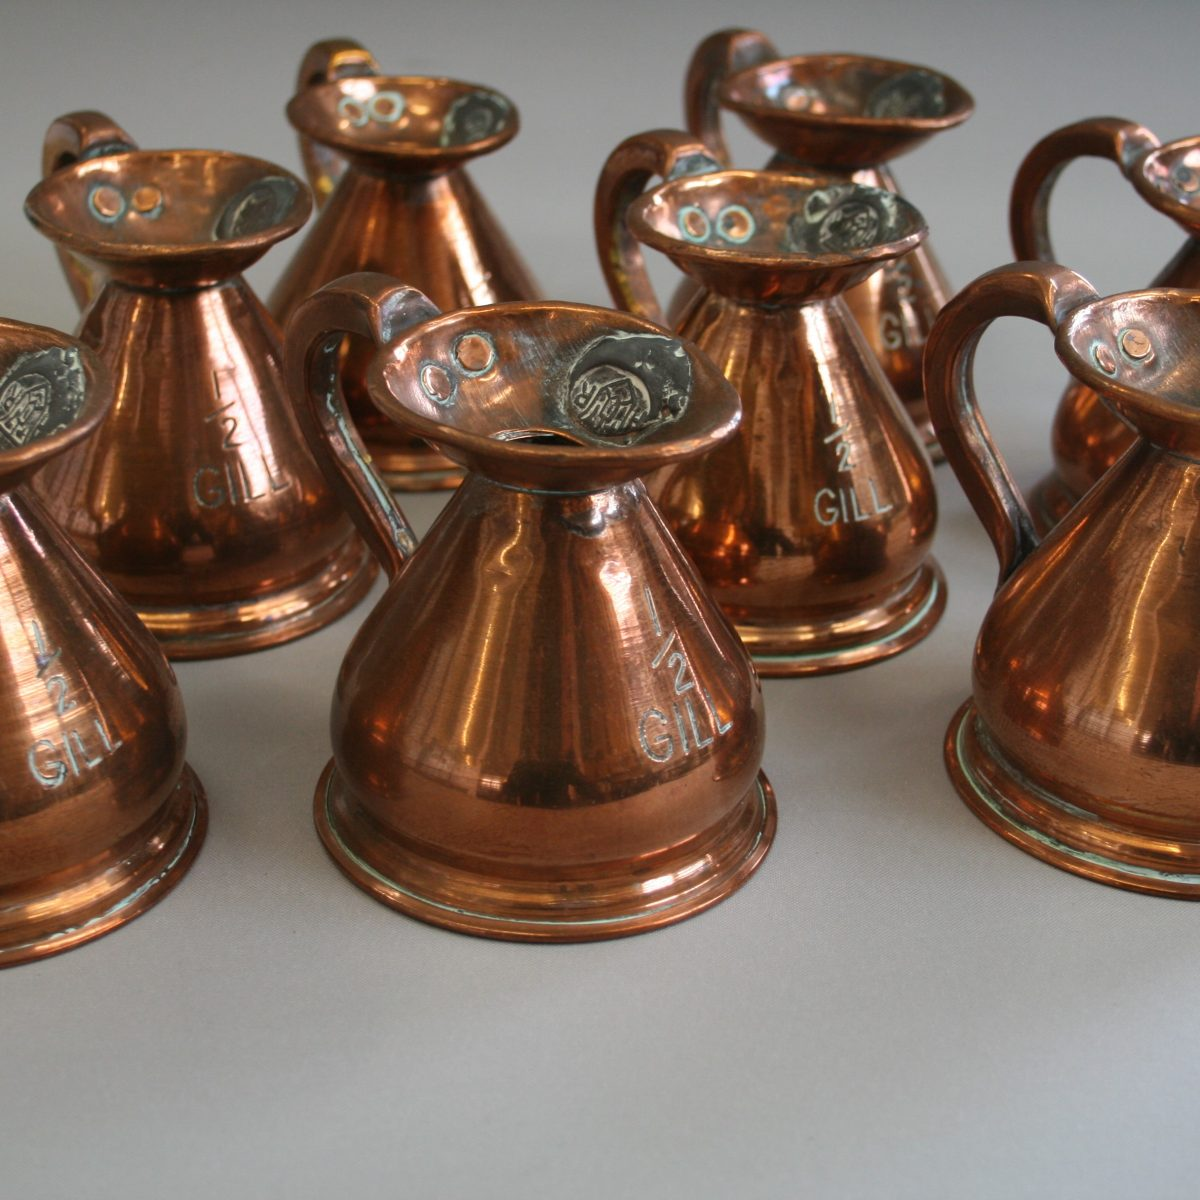 1/2 gill copper jug/williamsantiques